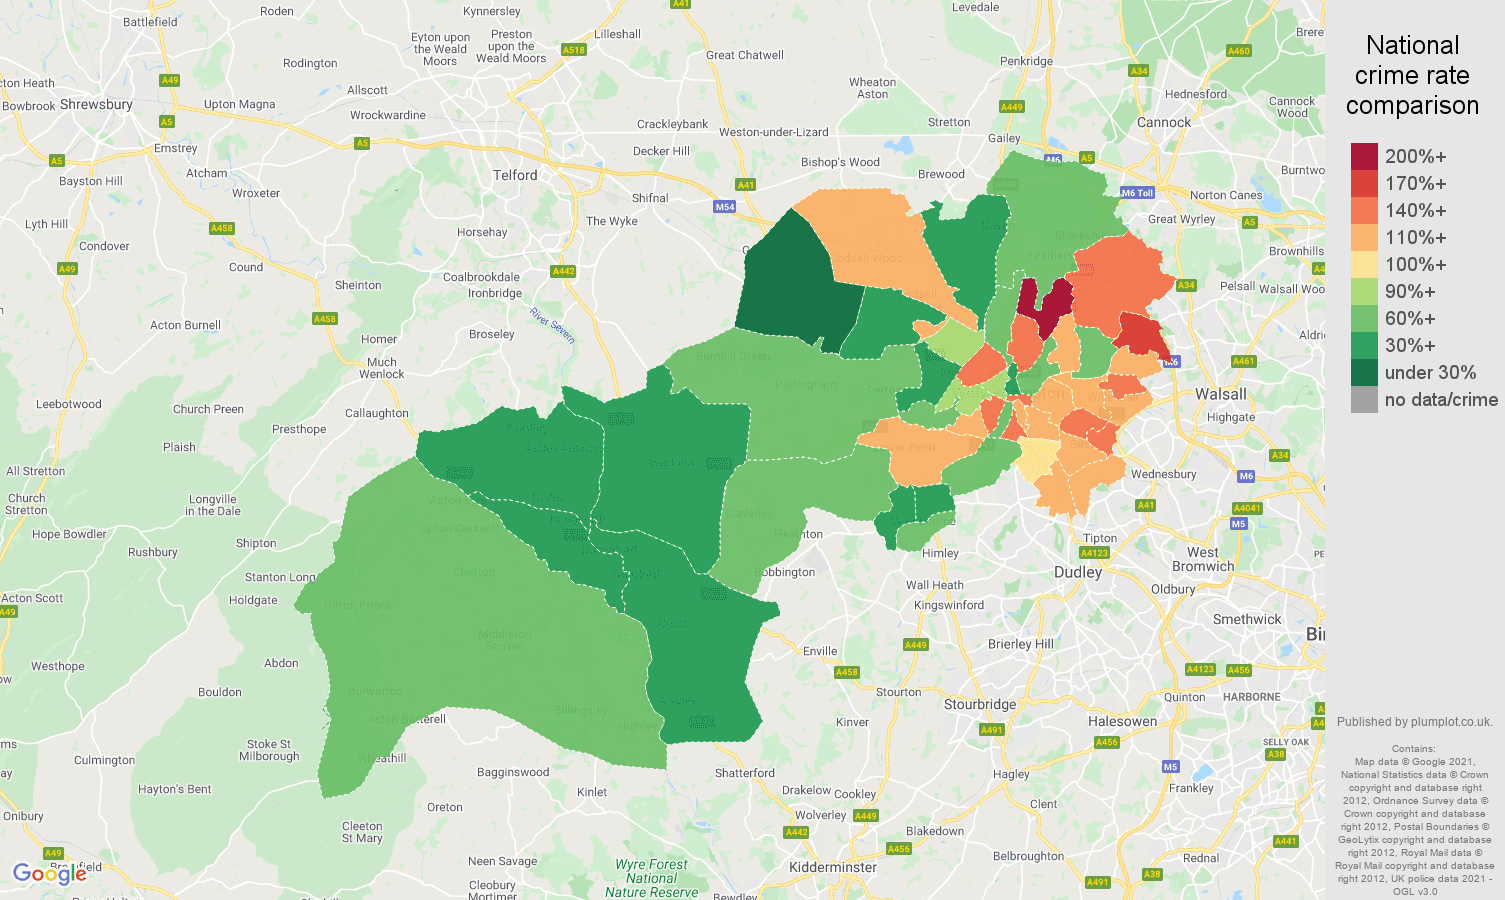 Wolverhampton criminal damage and arson crime rate comparison map